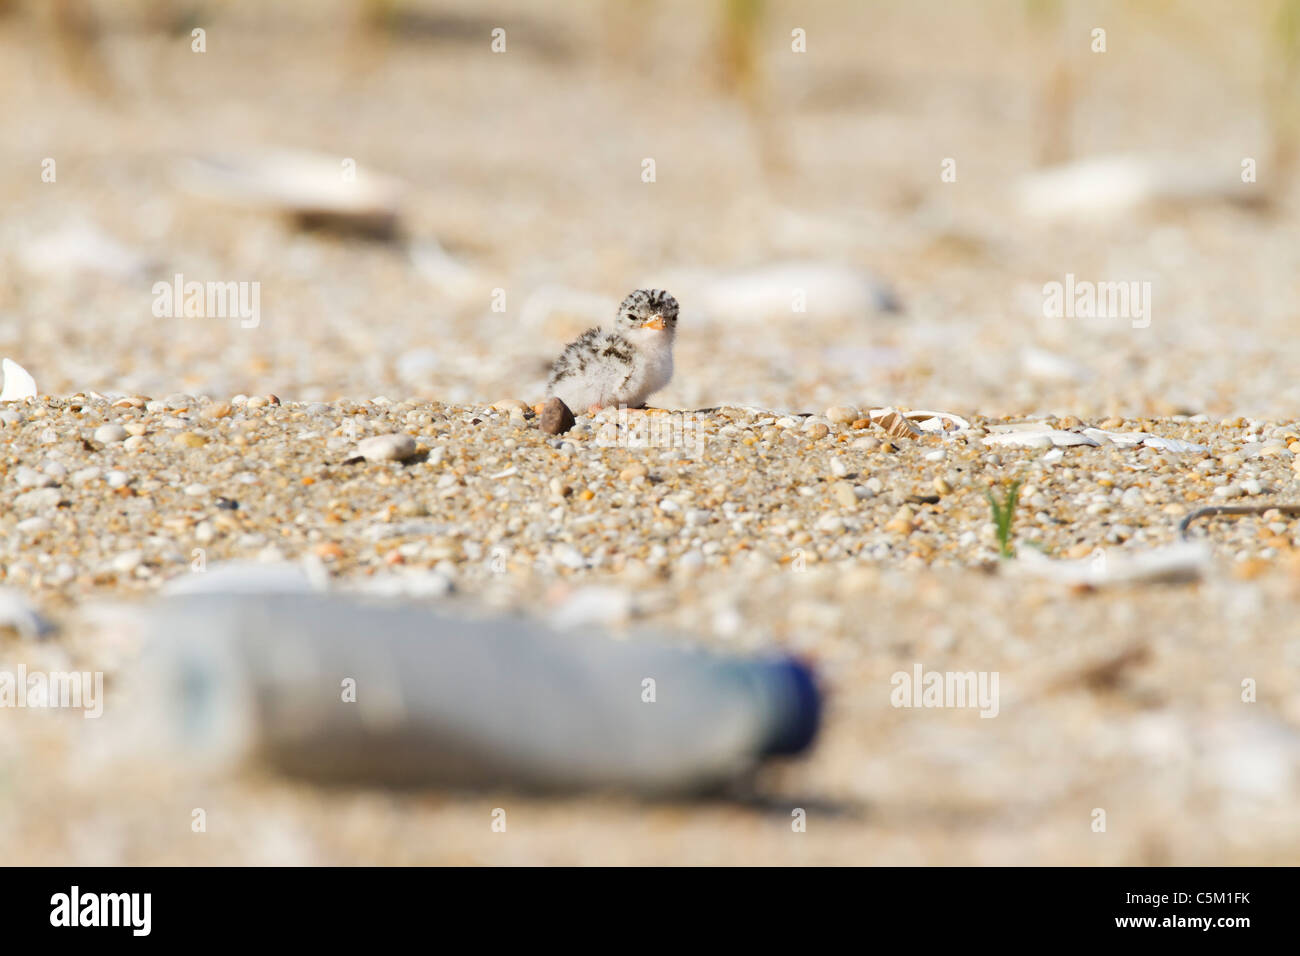 Least Tern chick on polluted beach - Stock Image